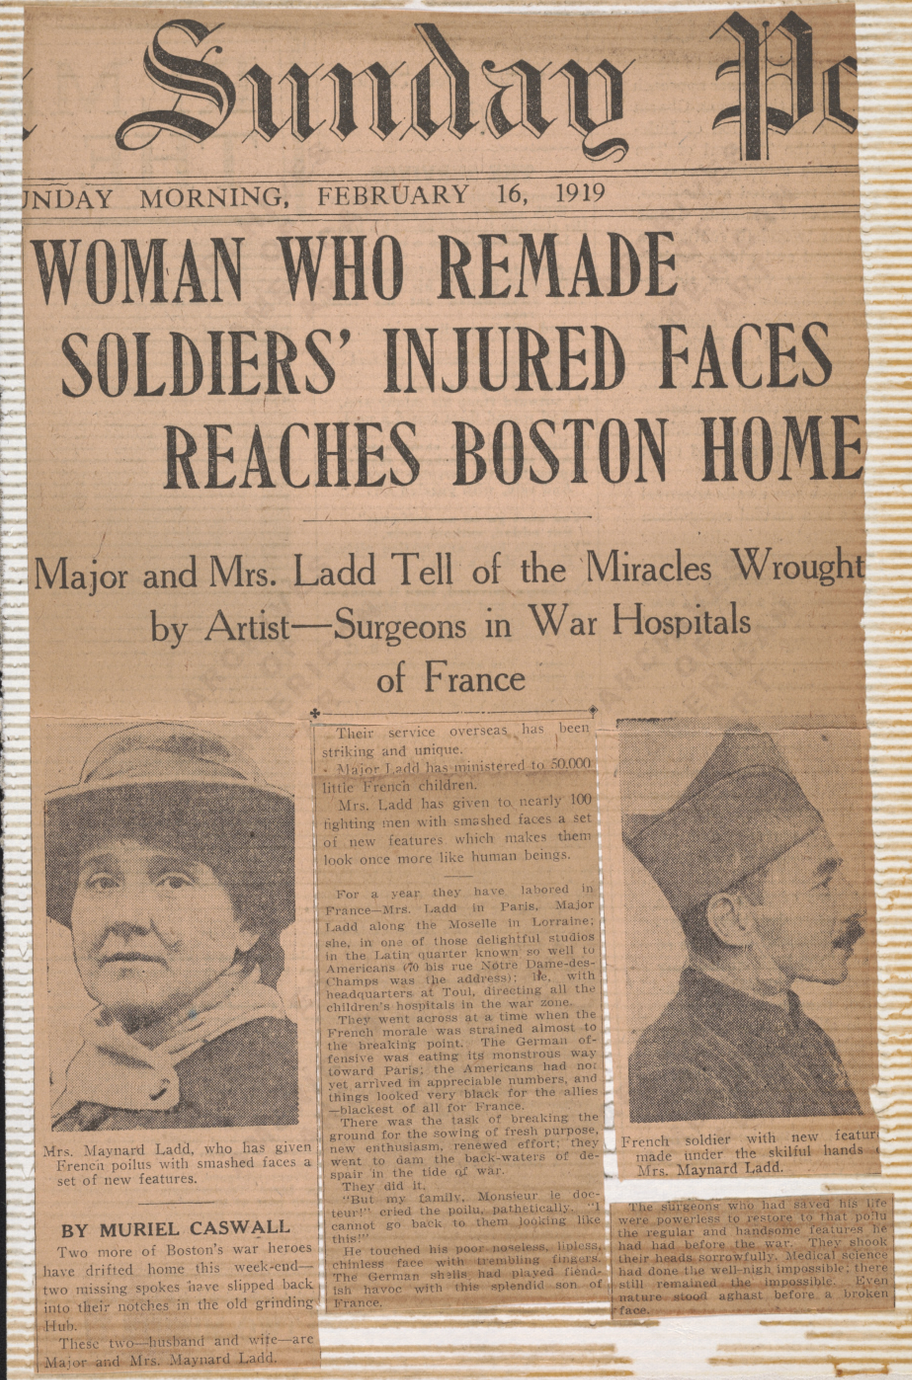 Olive tree genealogy blog the sculptor who created facial masks anna coleman ladd was a sculptor from philadelphia living in manchester massachusetts who devoted herself to helping disfigured ww1 soldiers fandeluxe Choice Image